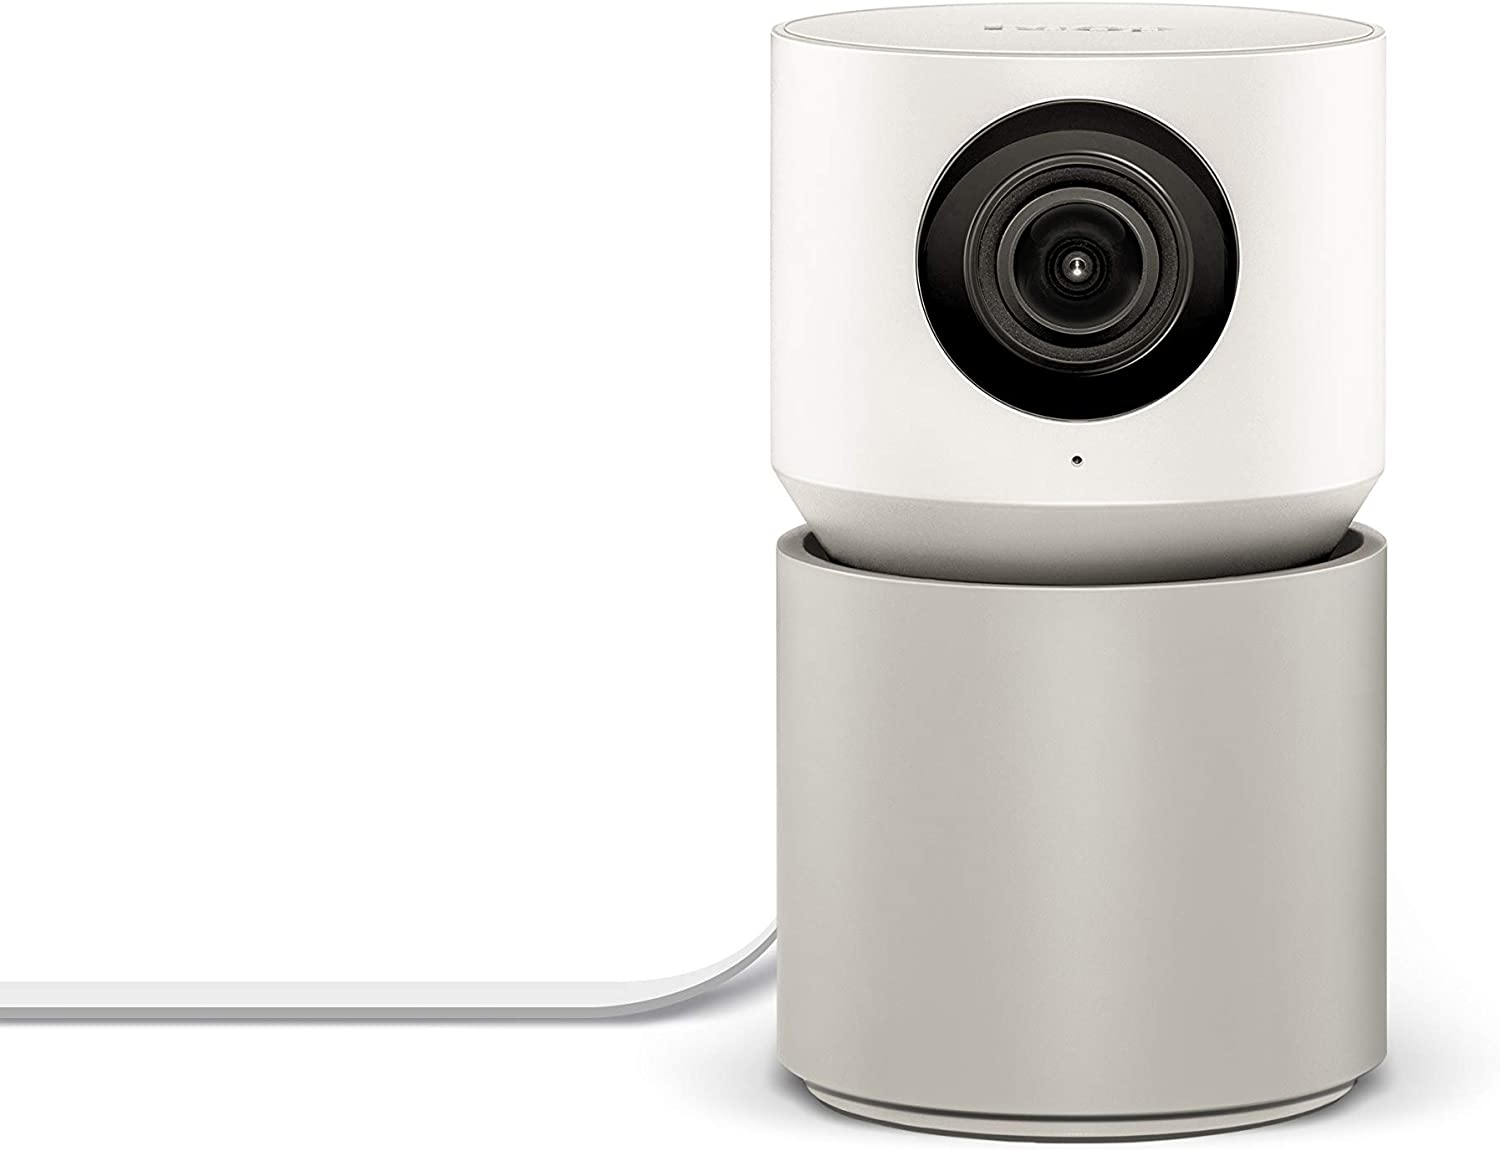 Hoop Home Security Camera, 1080p IP Indoor Wired Video Surveillance System, Sound/Motion Detection | 350° Pan/Tilt, Text to Speech, 2-Way Audio, Reminders, Live View, Smart App | Family & Pet Friendly